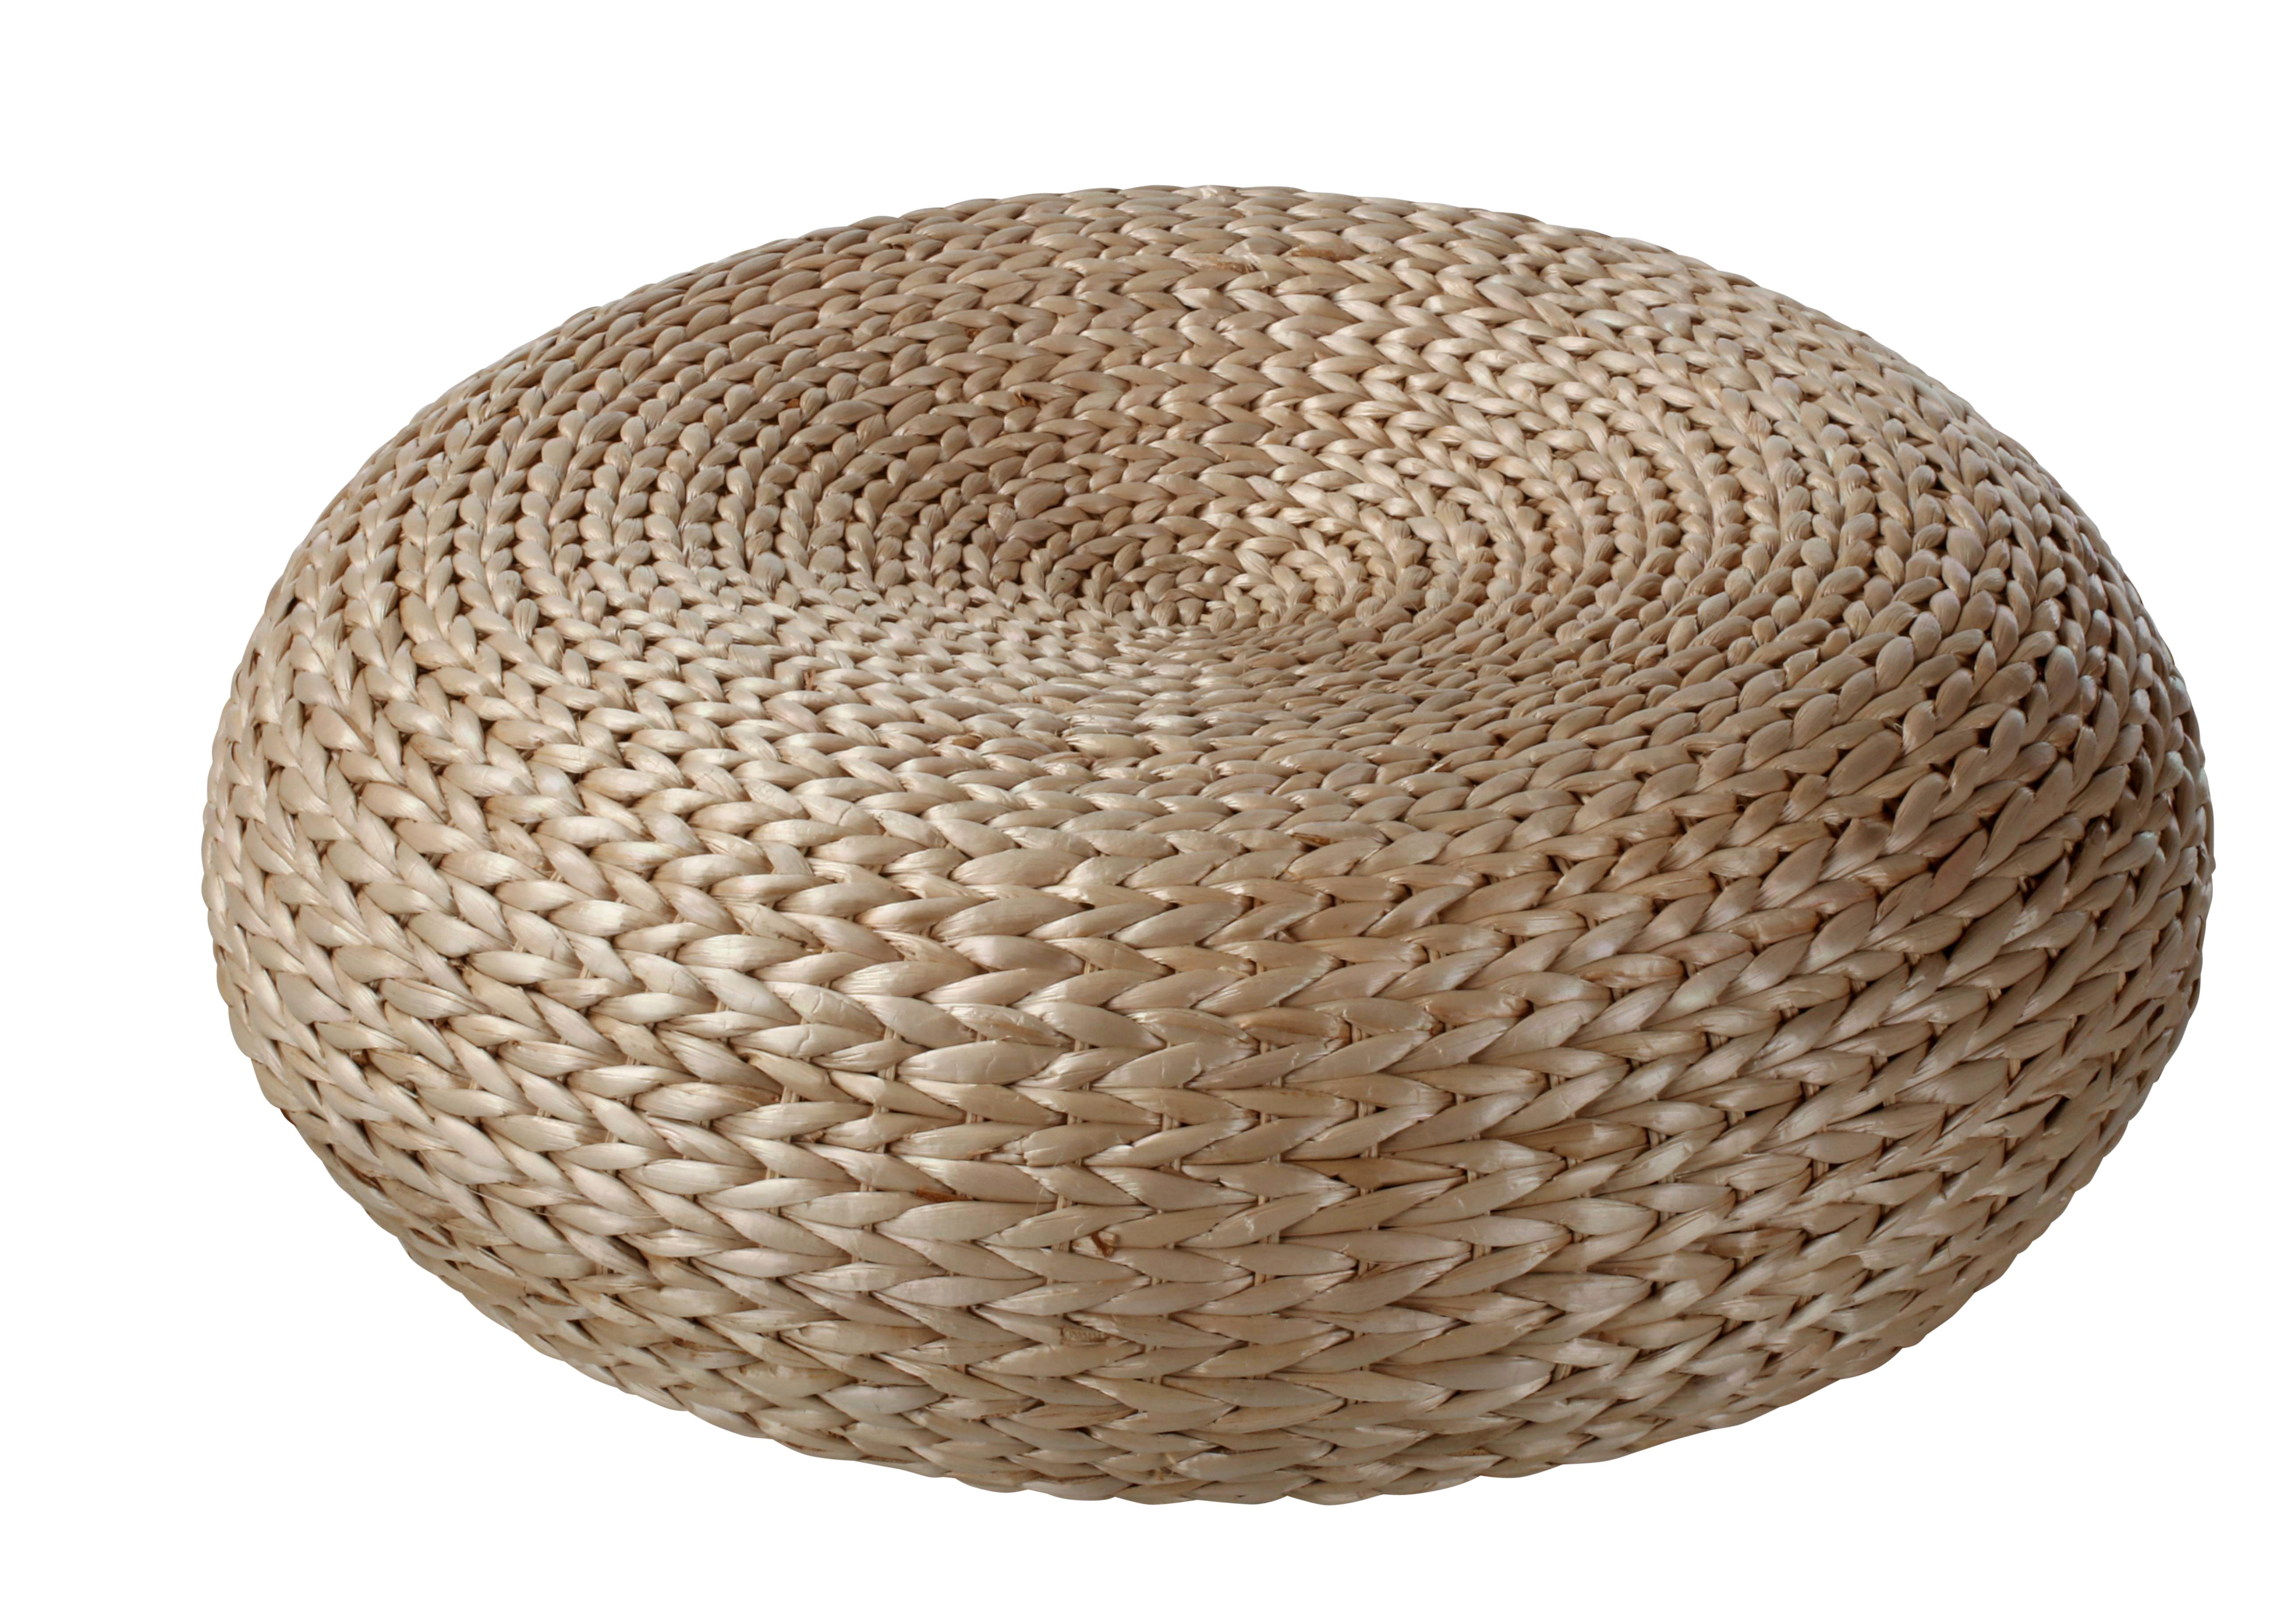 Ikea Pouf Osier Pouf Bahia Naturel Pièce De Vie Naia Home Decor Decorative